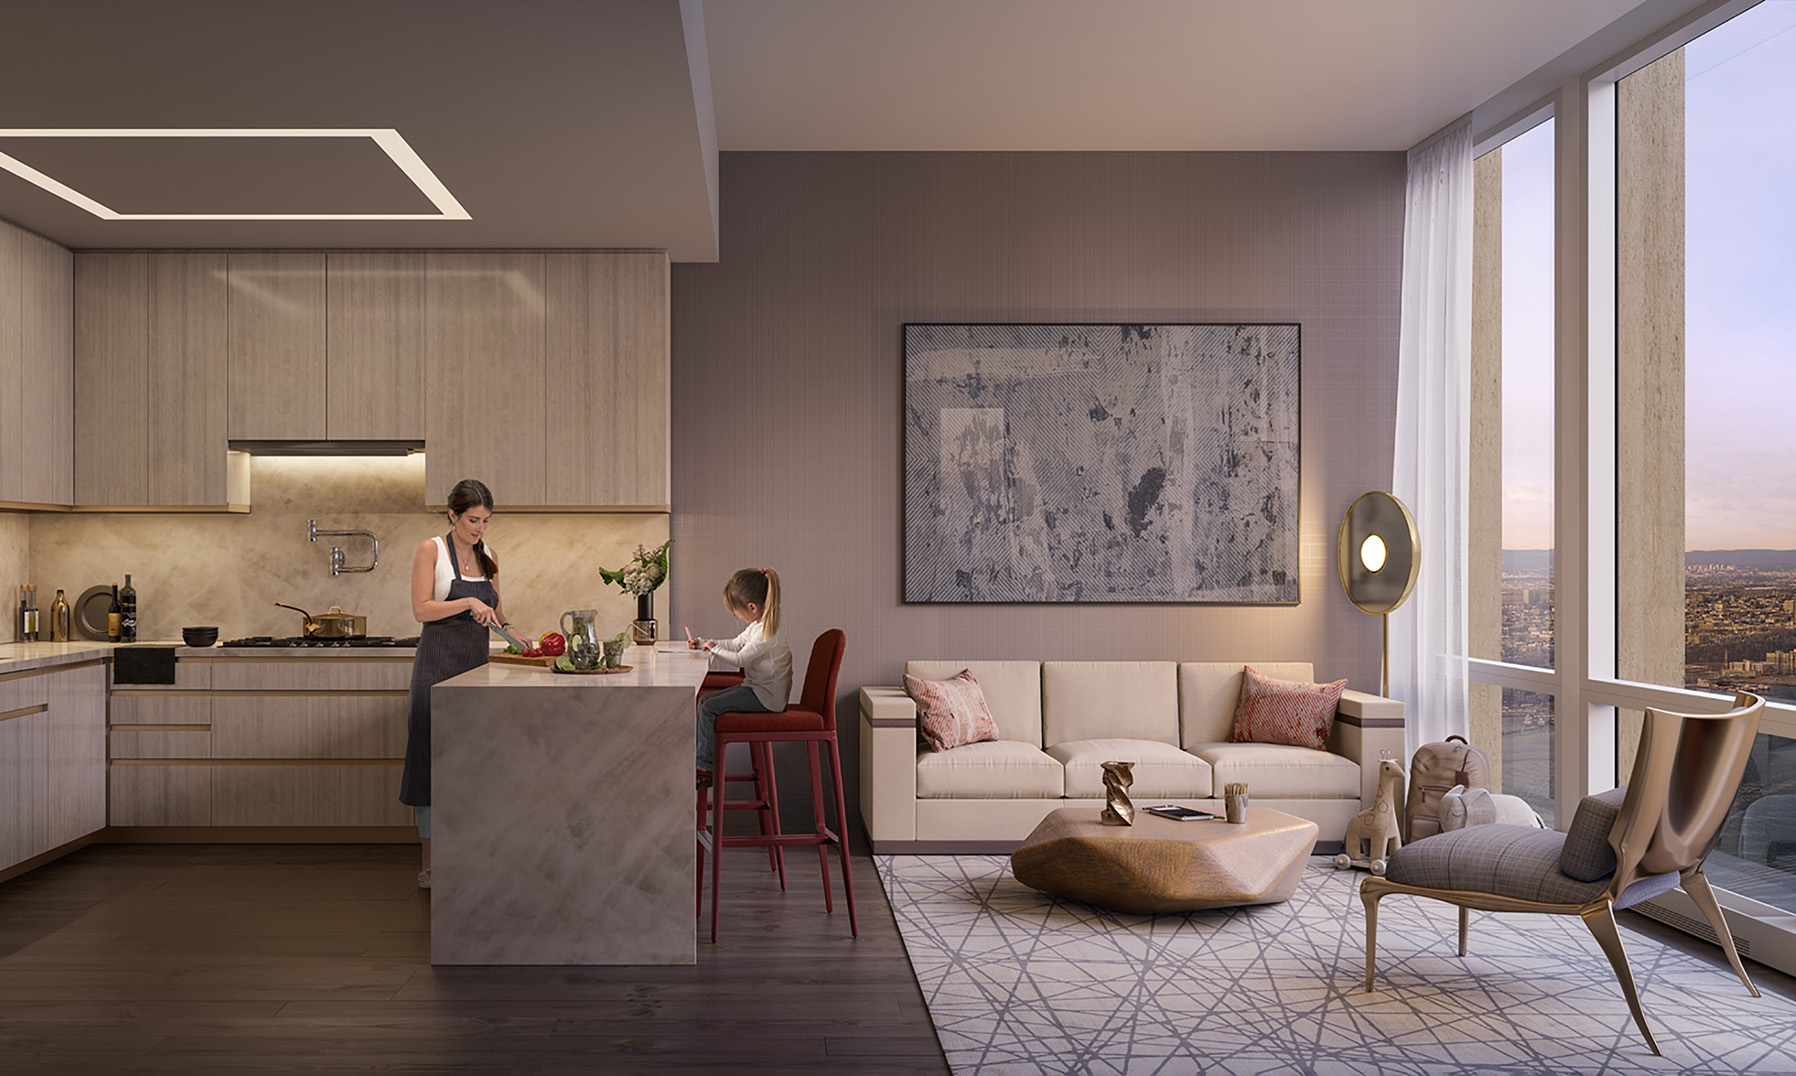 Windowed eat-in kitchen 2